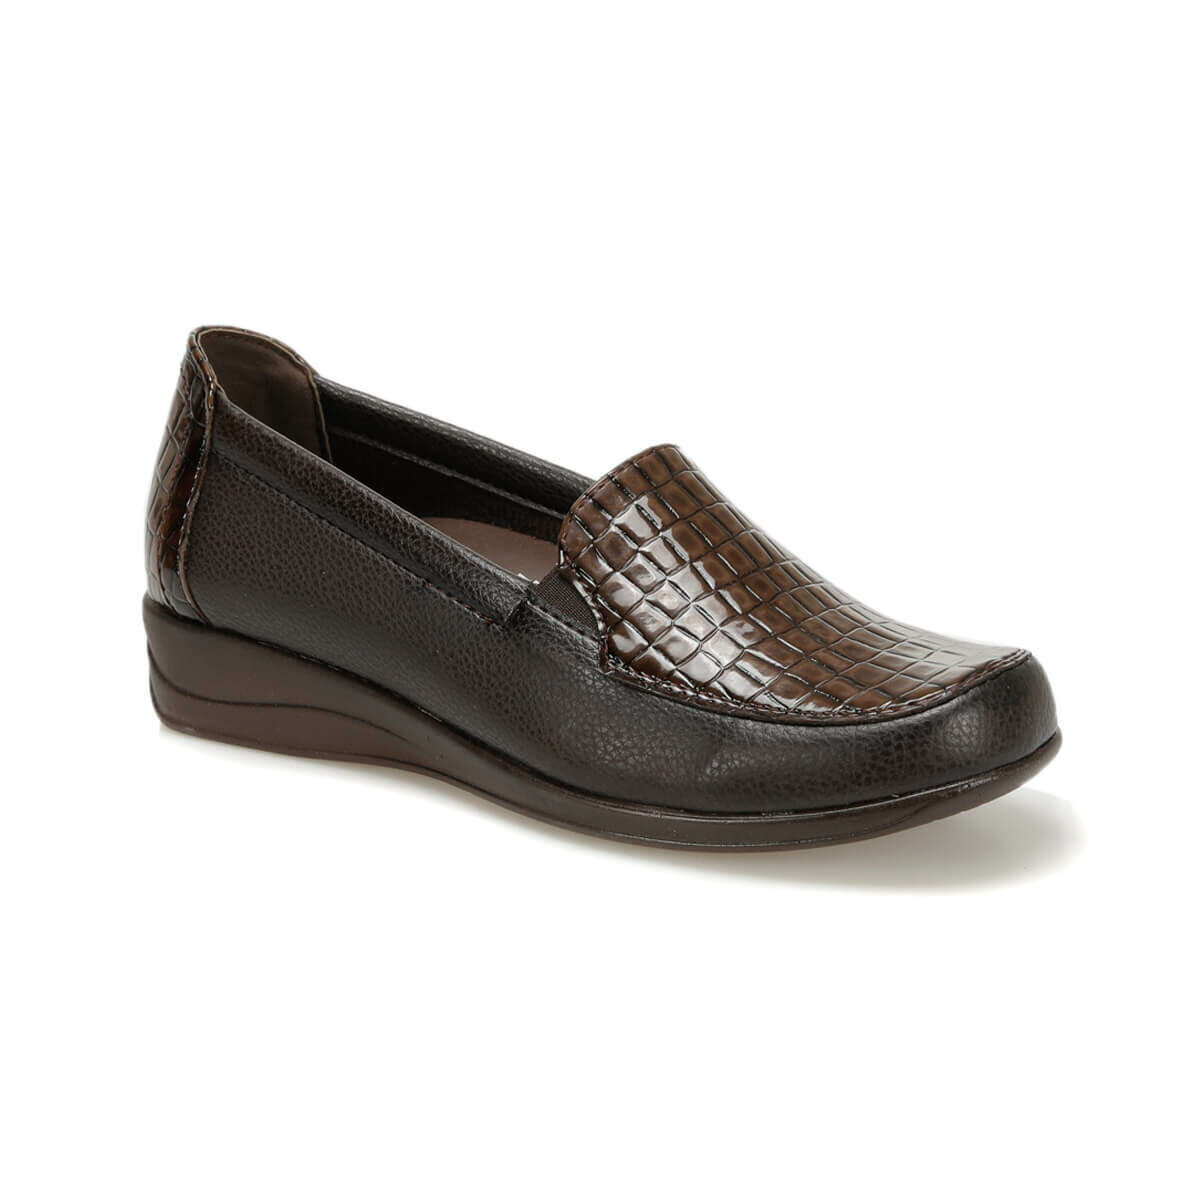 FLO 72.109016.Z Brown Women 'S Shoes Polaris 5 Point